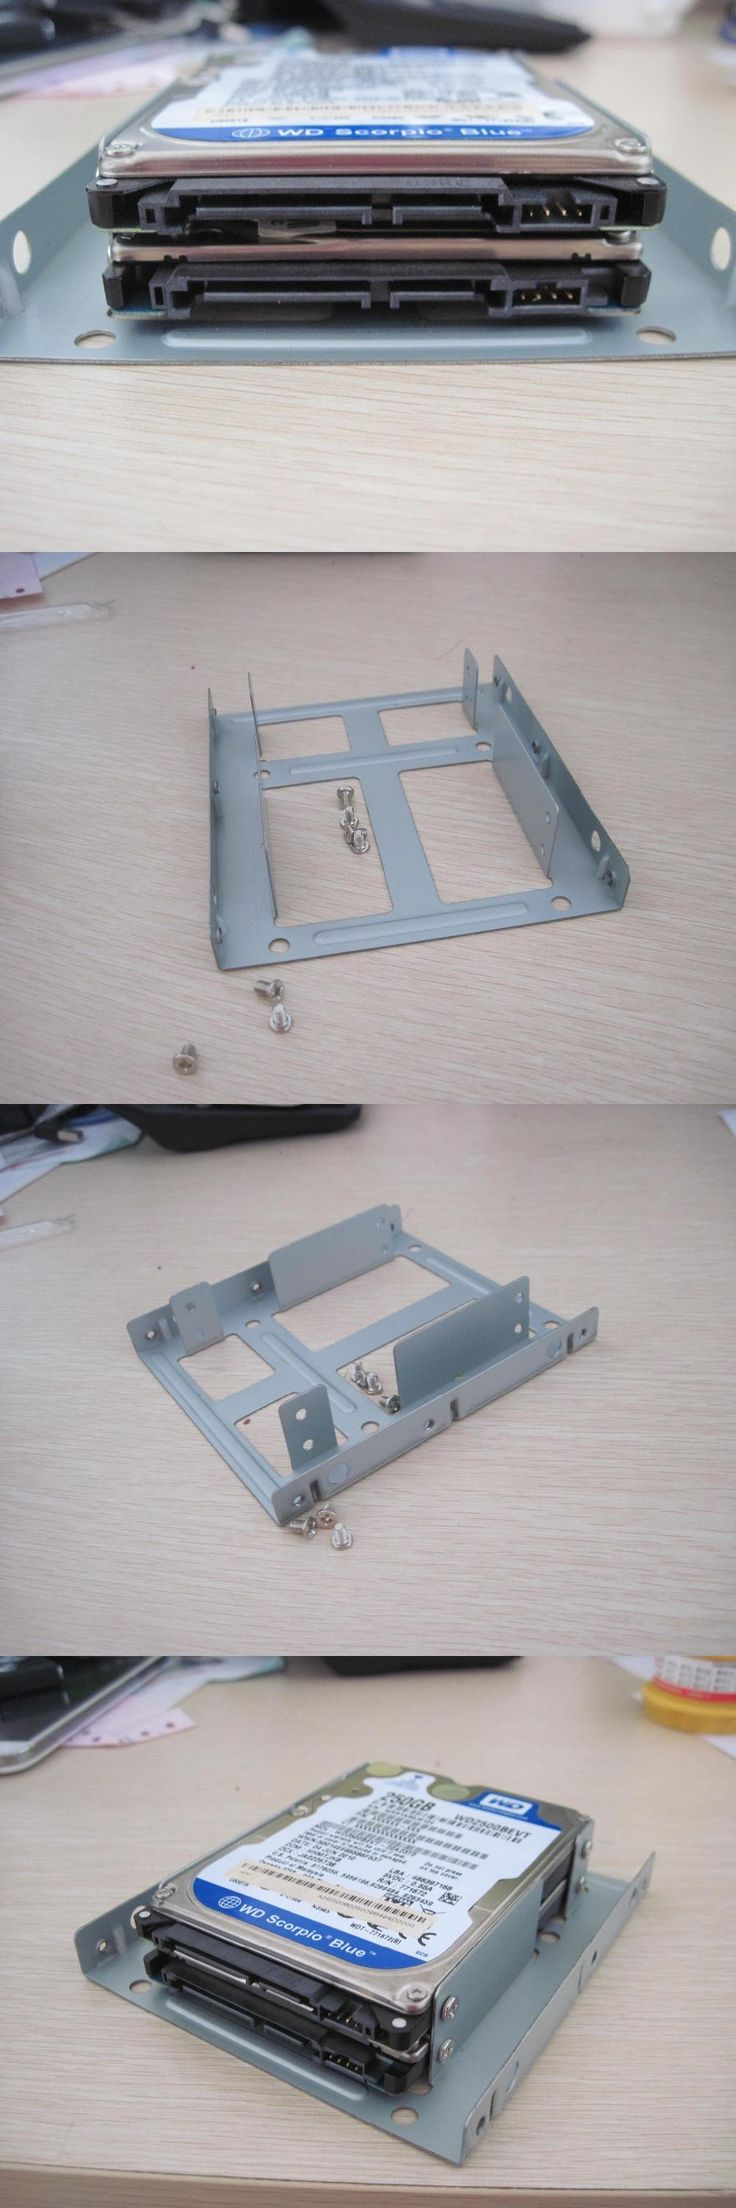 """2pcs---2.5"""" inch 2x Slot to 3.5"""" Hard Drive SSD HDD Converter Tray Caddy Bracket Carrier + Screws"""